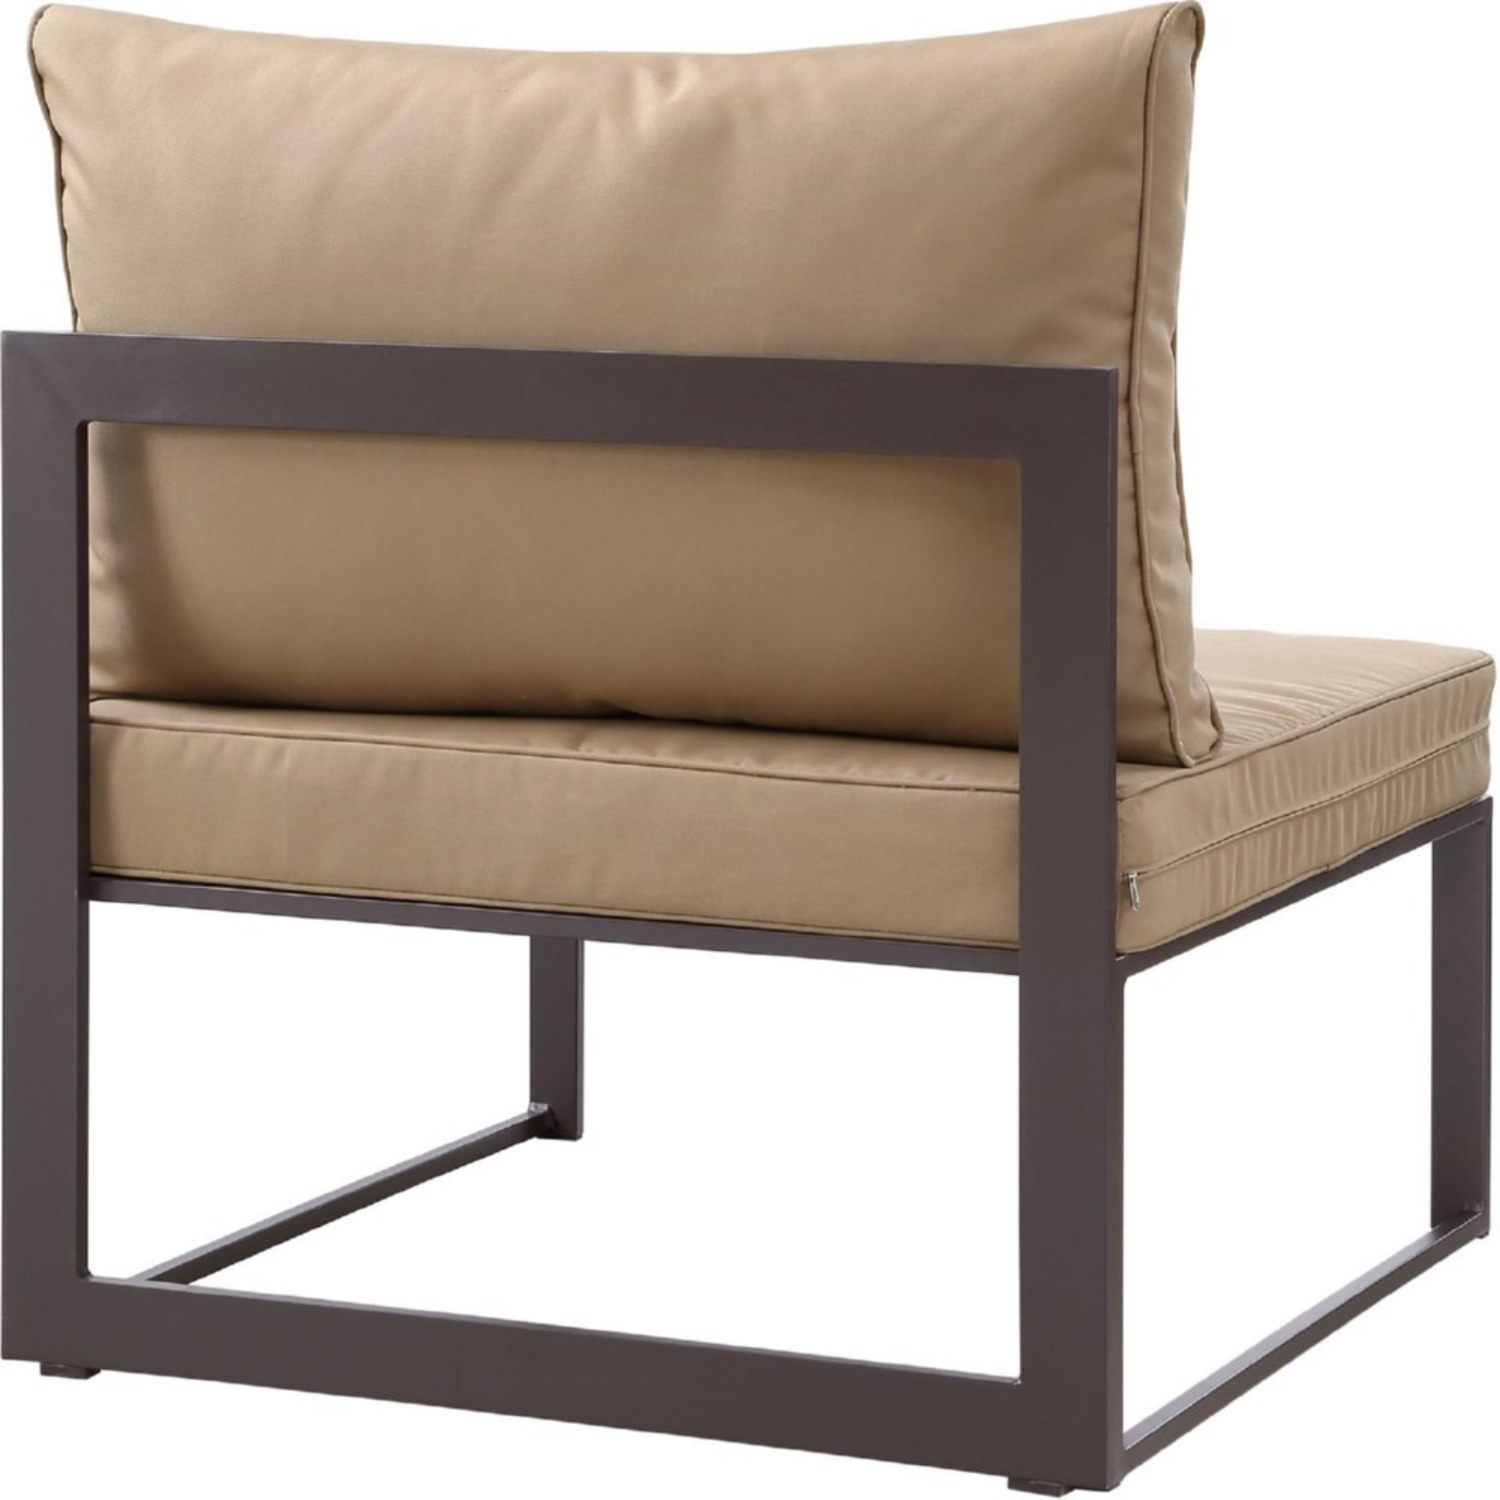 7-Piece Outdoor Sectional In Mocha & Brown Finish - image-6